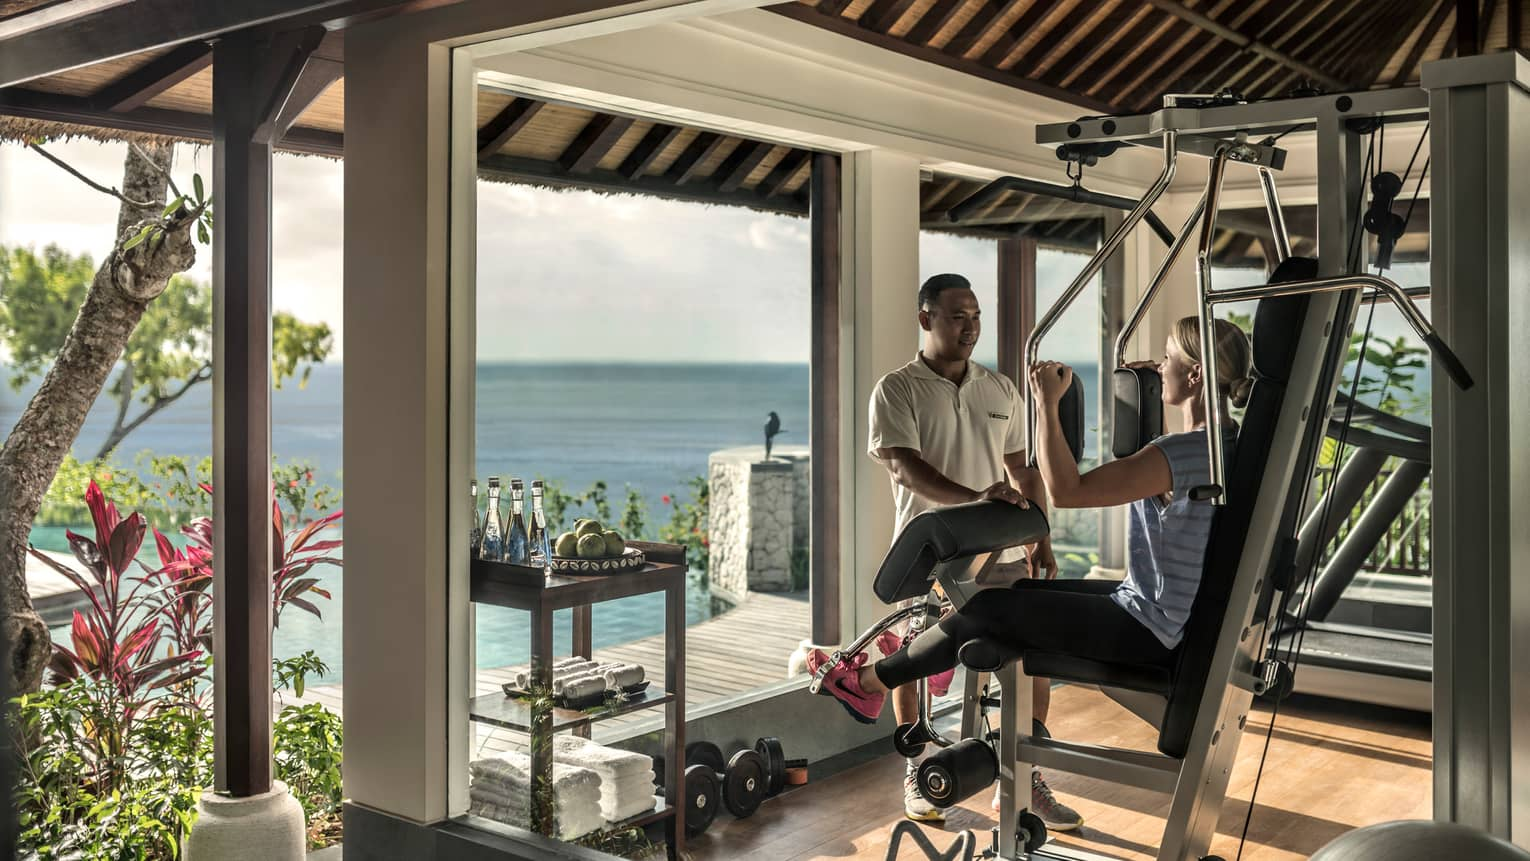 Imperial Villa private gym, trainer assists women on weights machine by window with ocean view